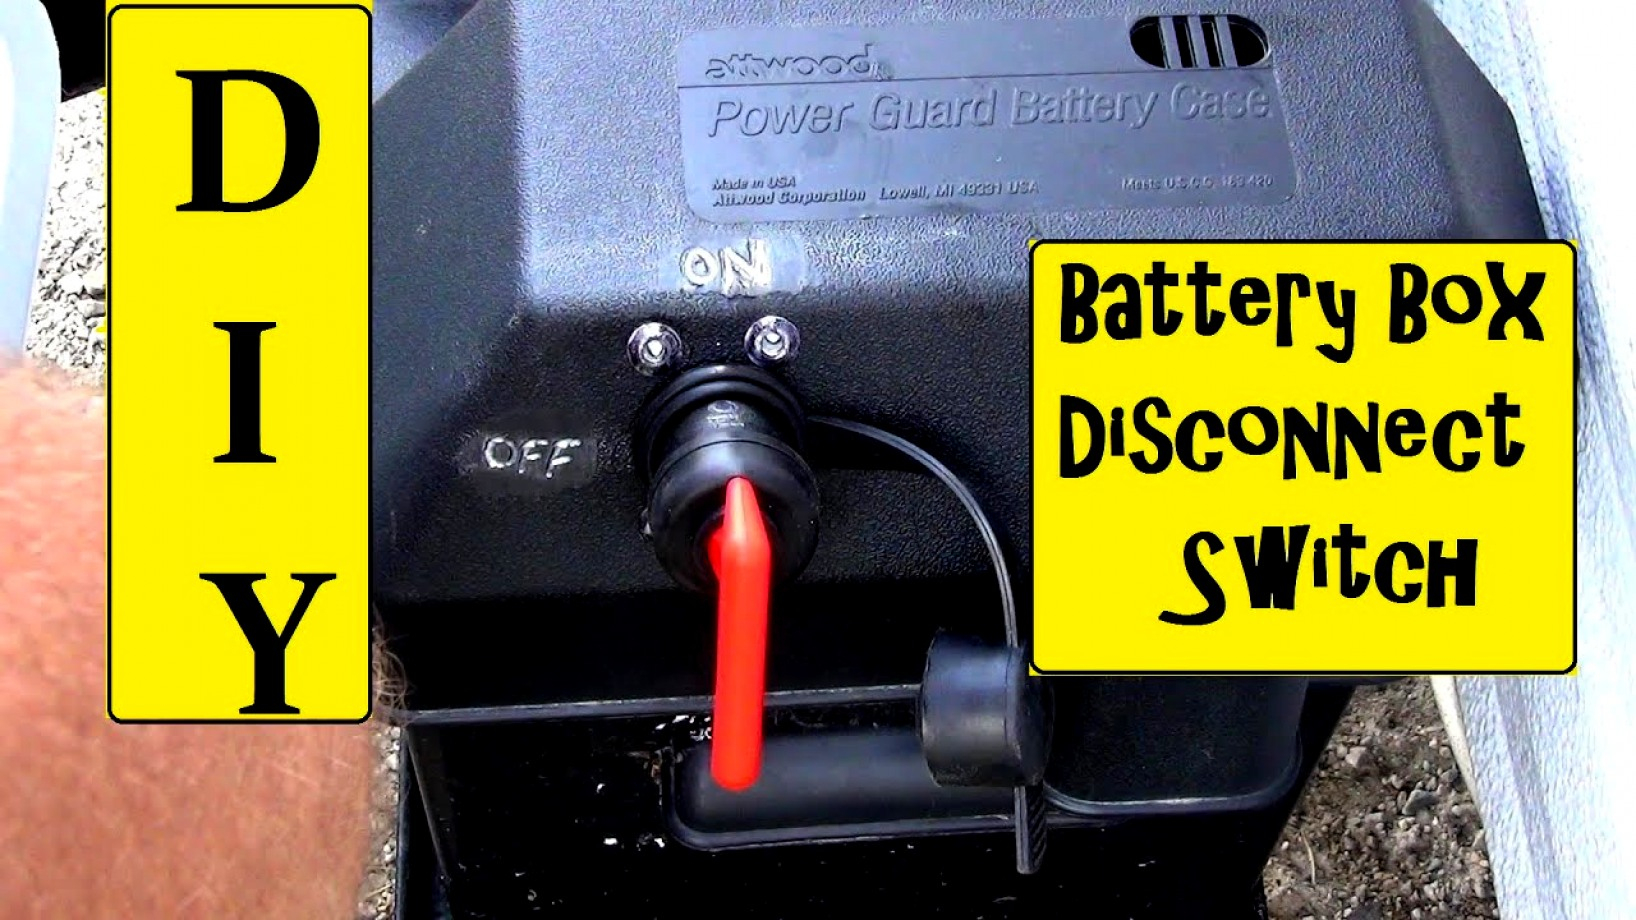 Rv Battery Disconnect Switch Wiring Diagram - Simple Wiring Diagram - Rv Battery Disconnect Switch Wiring Diagram